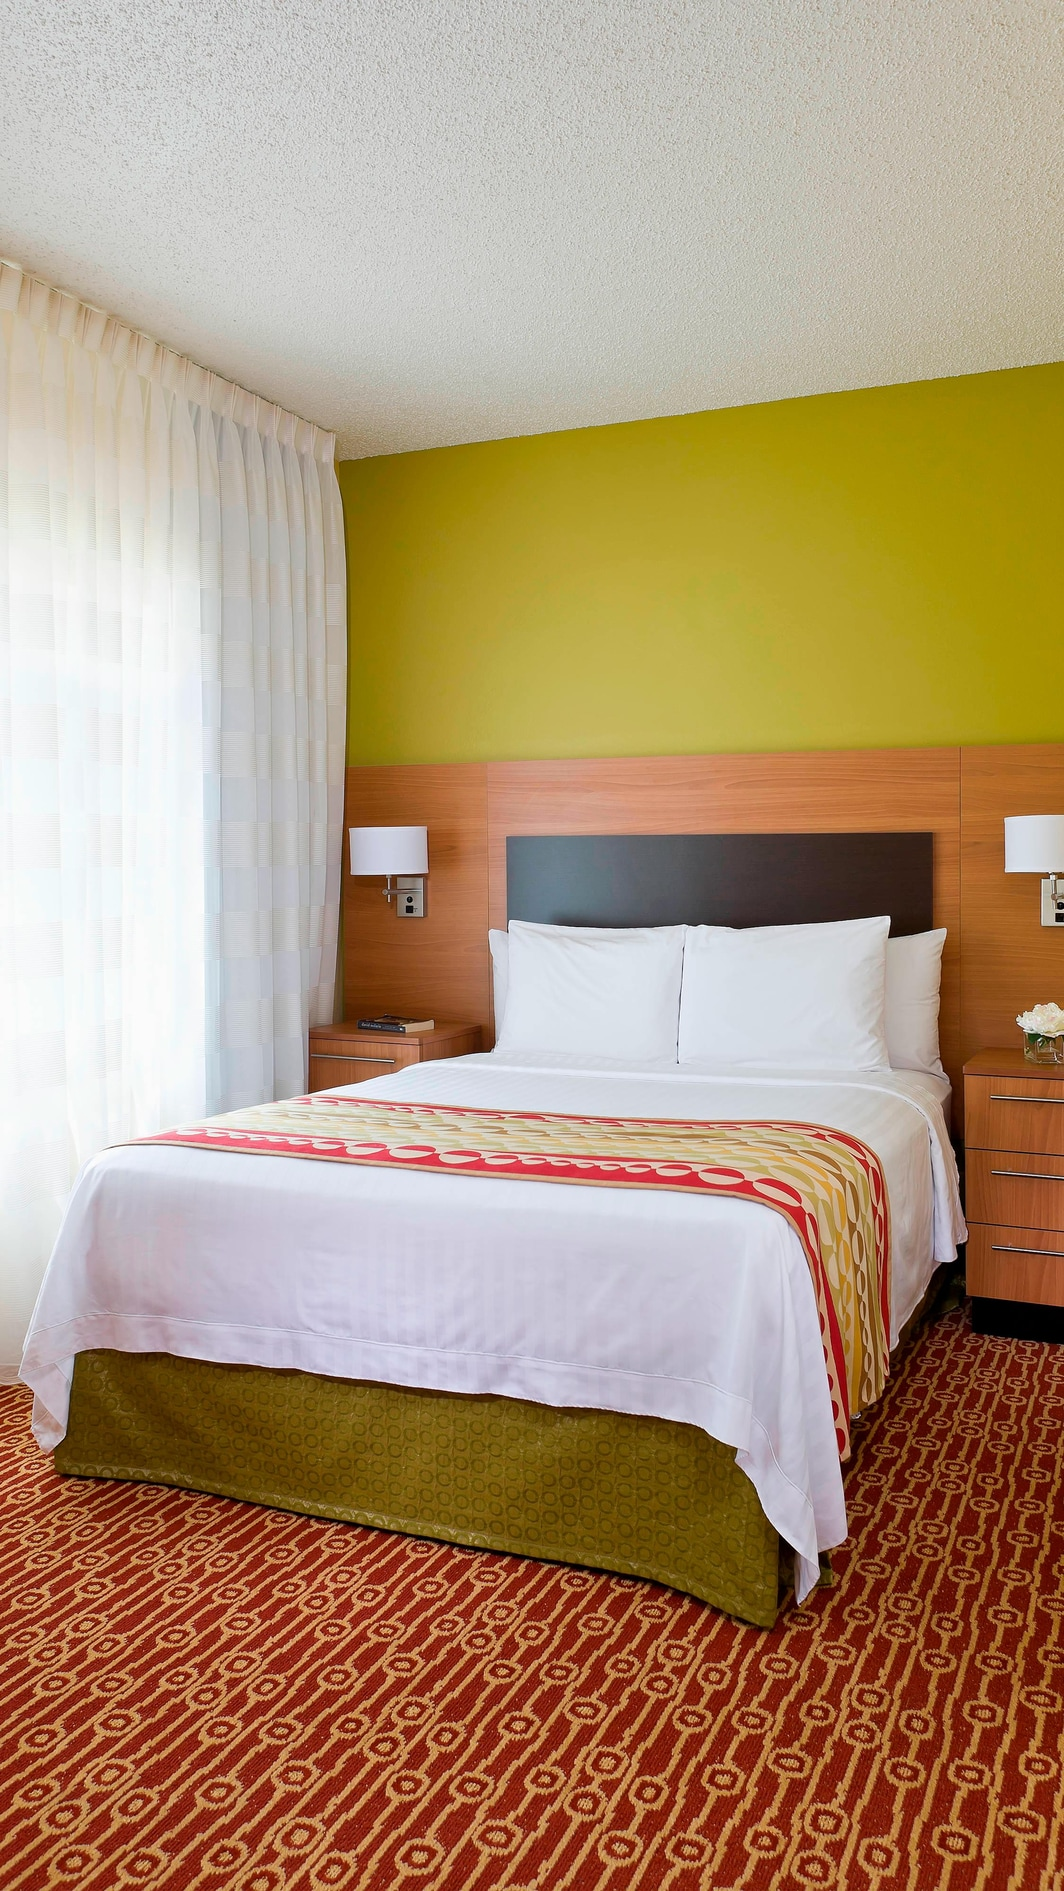 Bedford Texas Hotel Guest Room